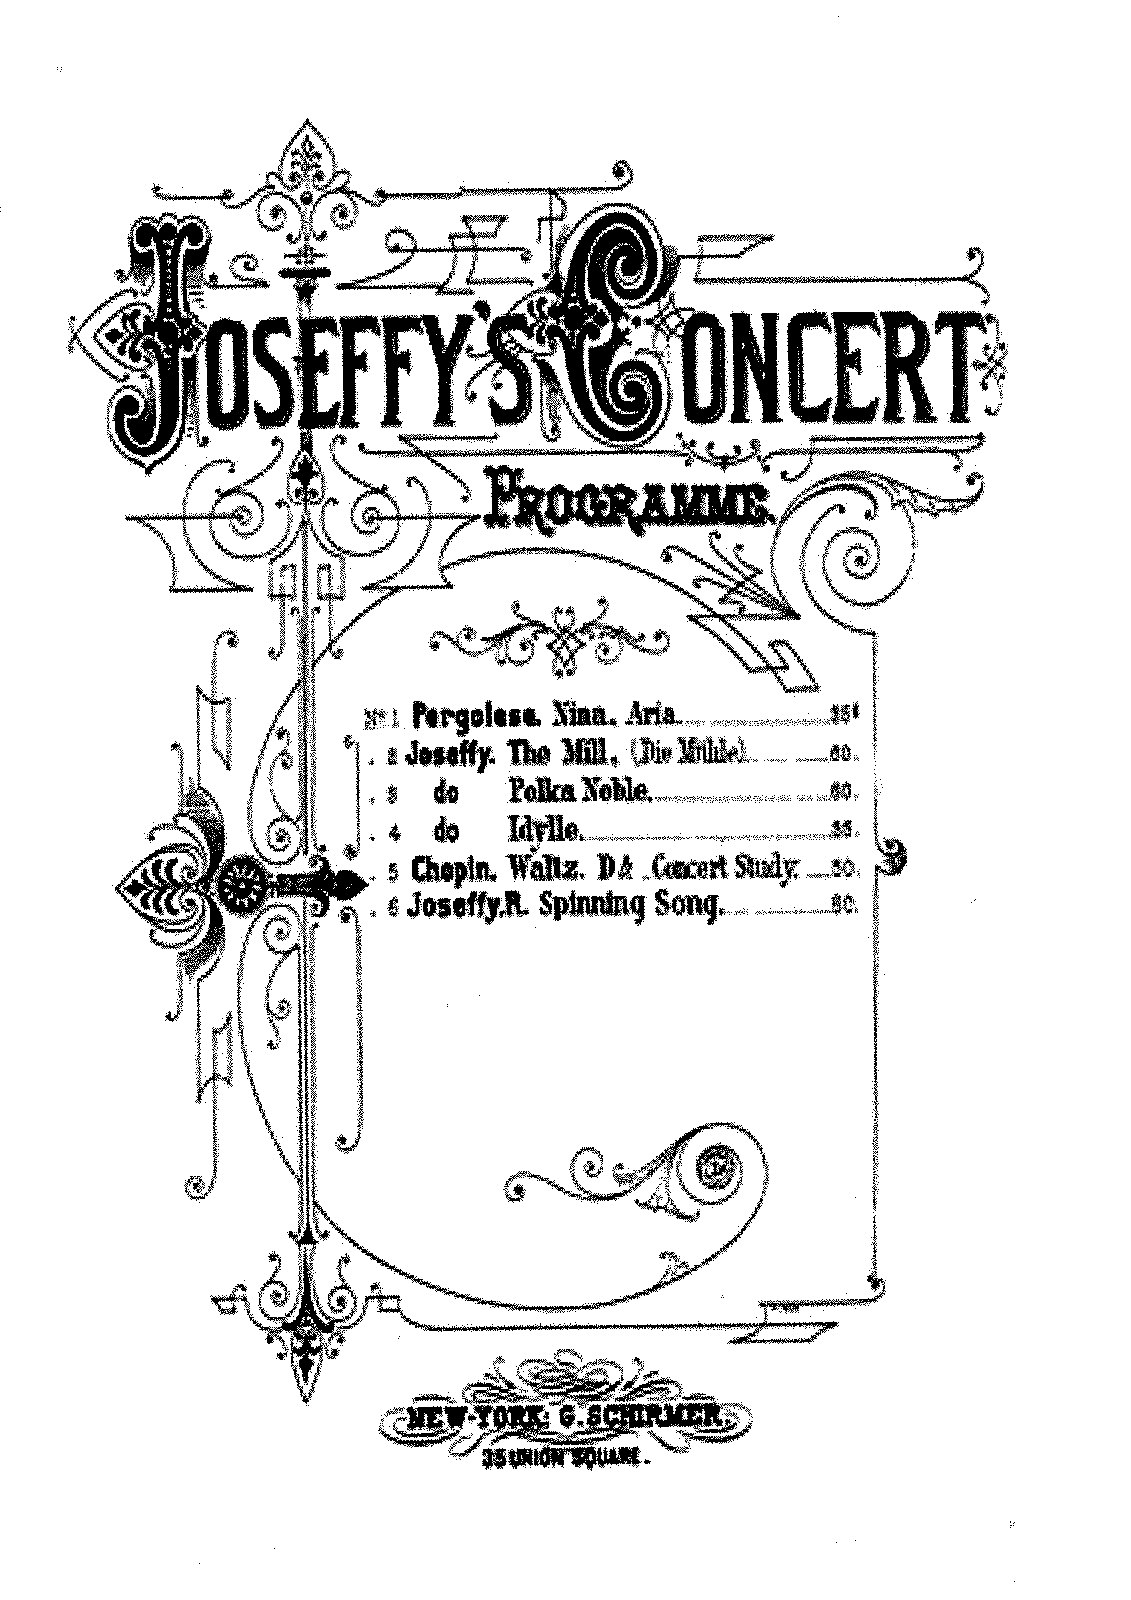 PMLP51683-Joseffy - Transcription - Pergolesi - Aria 'Nina' (5p).pdf